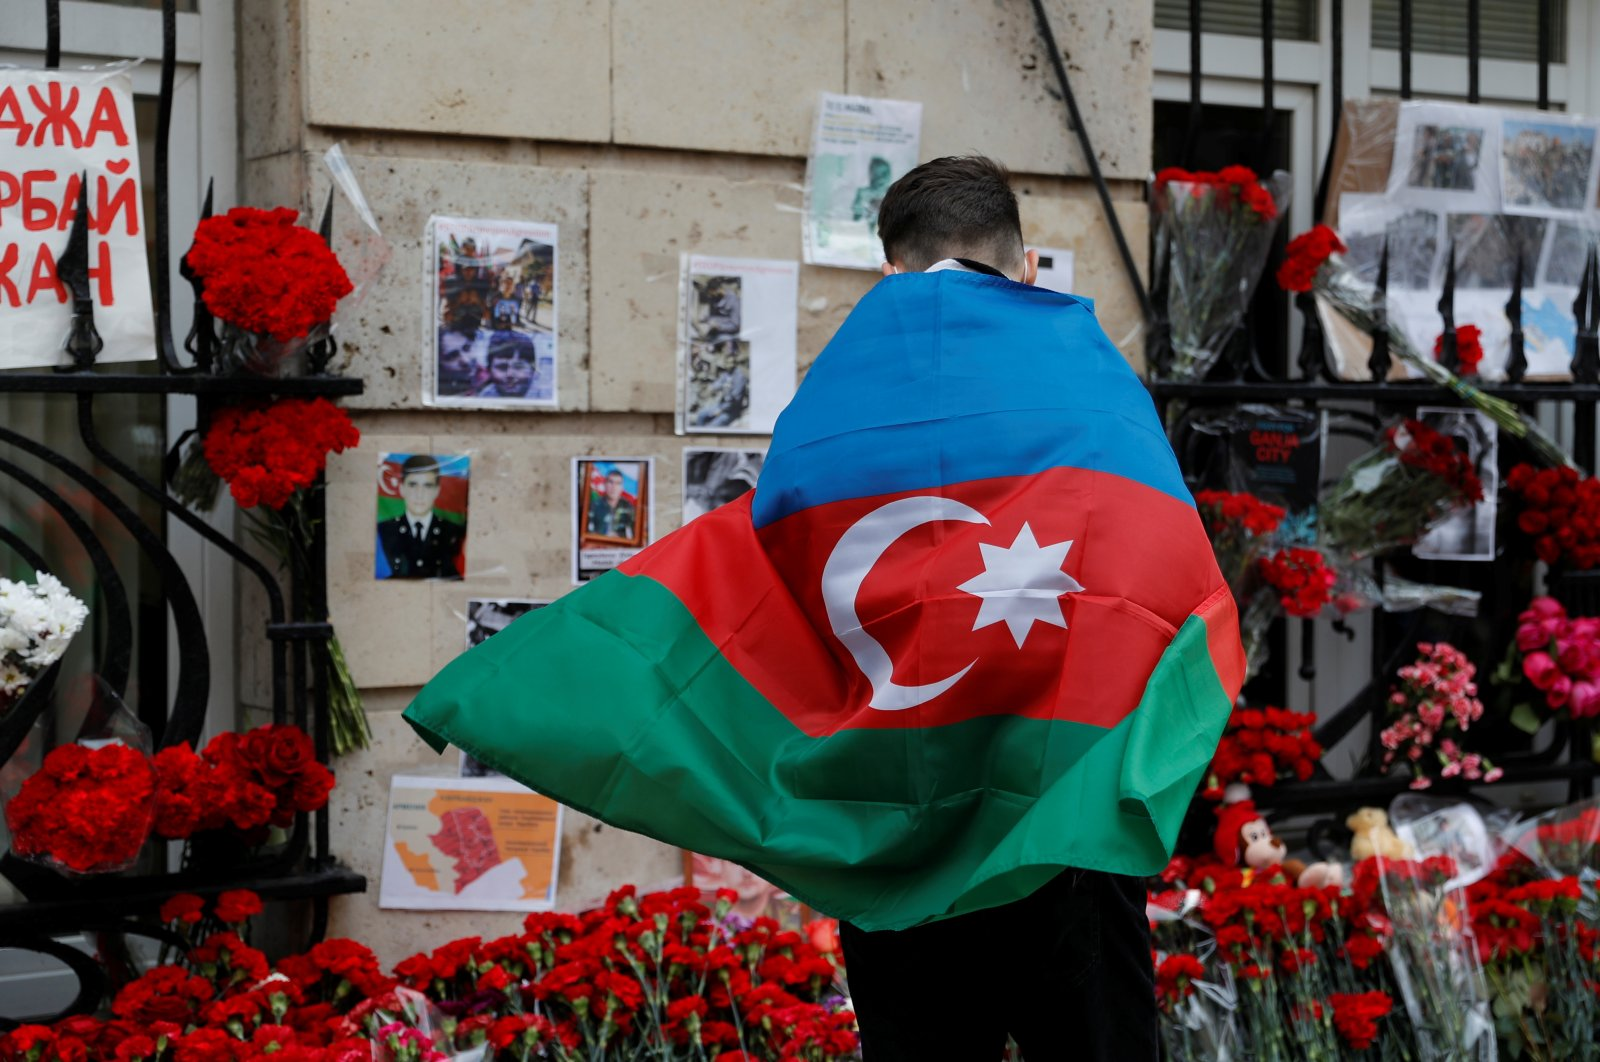 A man holding the national flag of Azerbaijan stands next to a makeshift memorial for people killed in the country during the military conflict over the occupied region of Nagorno-Karabakh, outside the Embassy of Azerbaijan in Moscow, Oct. 19, 2020. (Reuters Photo)